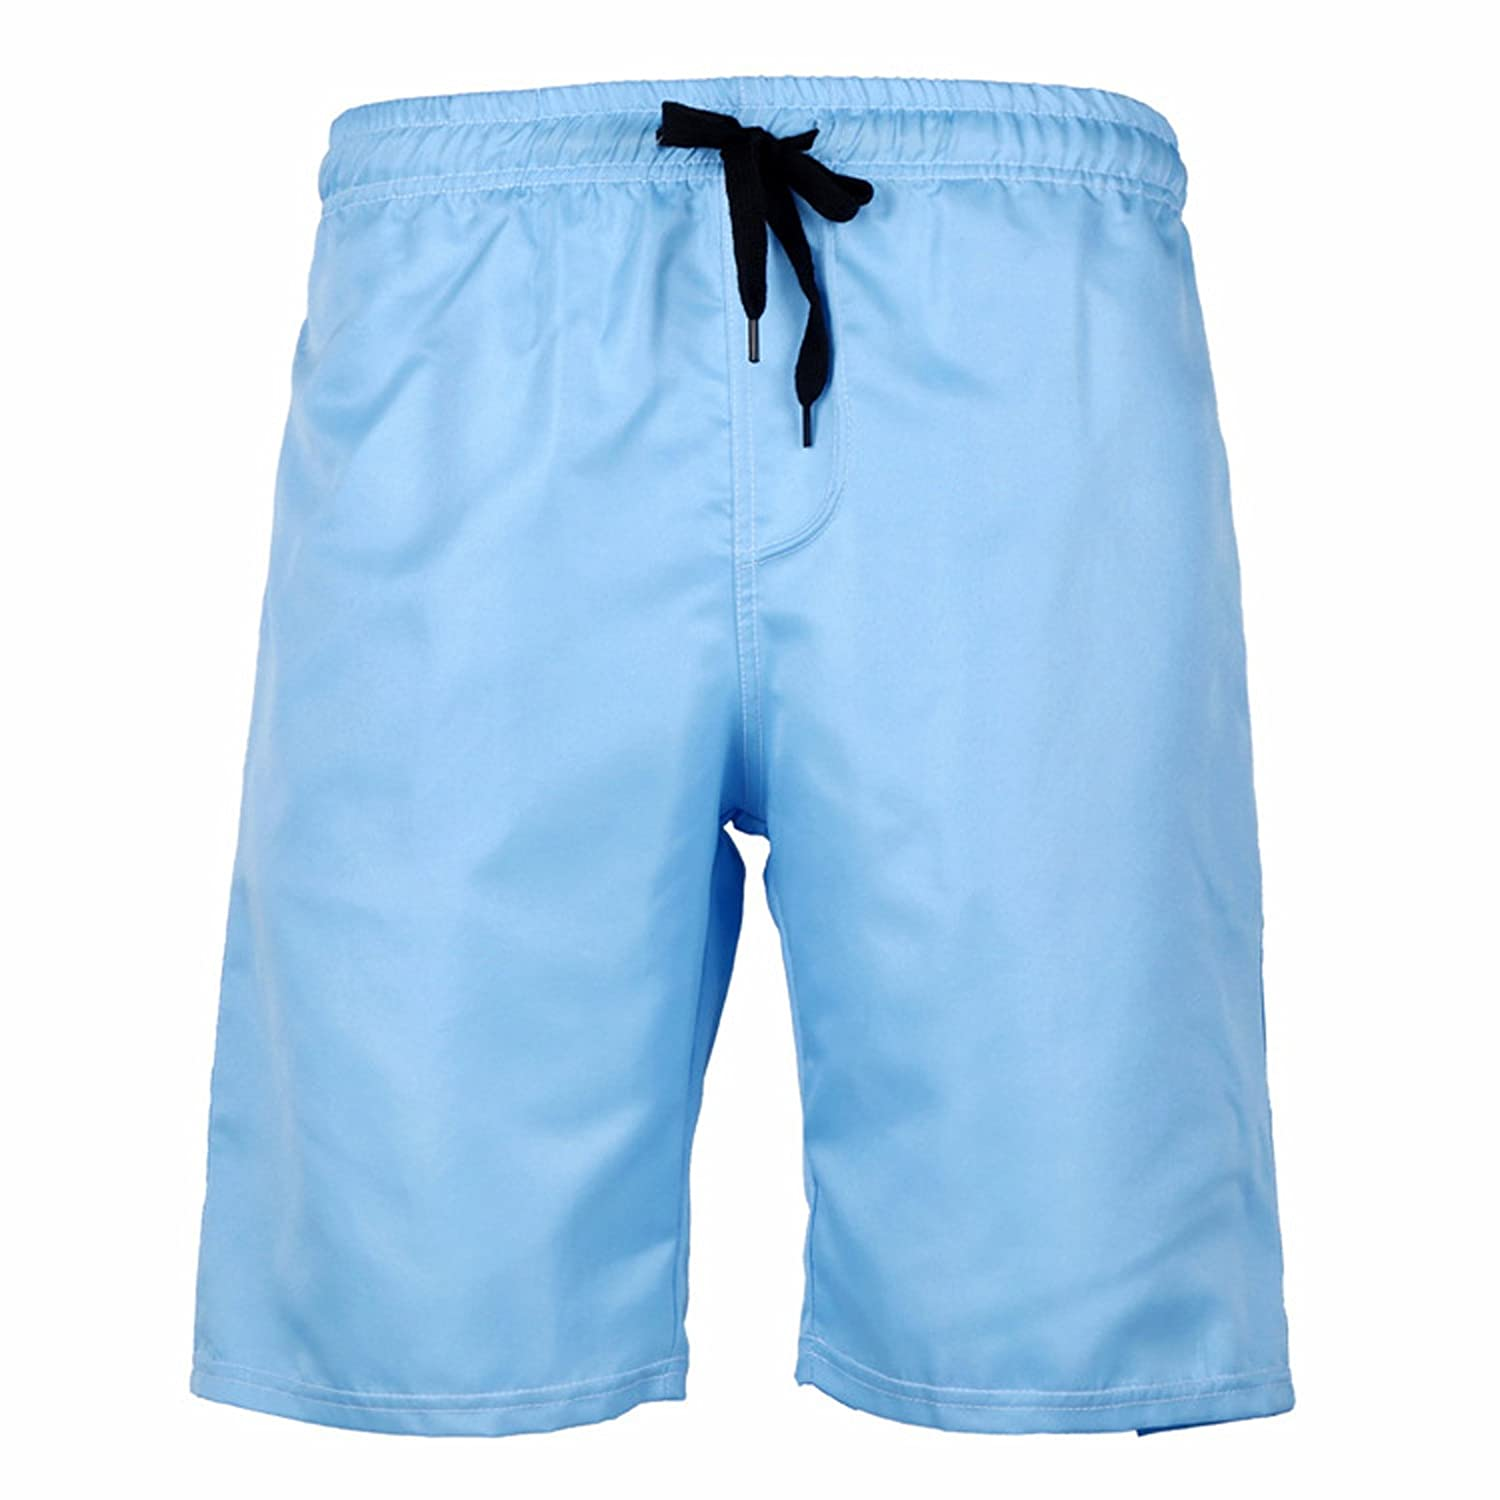 ZIOOER Men's Sold Color Drawstring Beach Shorts & Swim Trunks